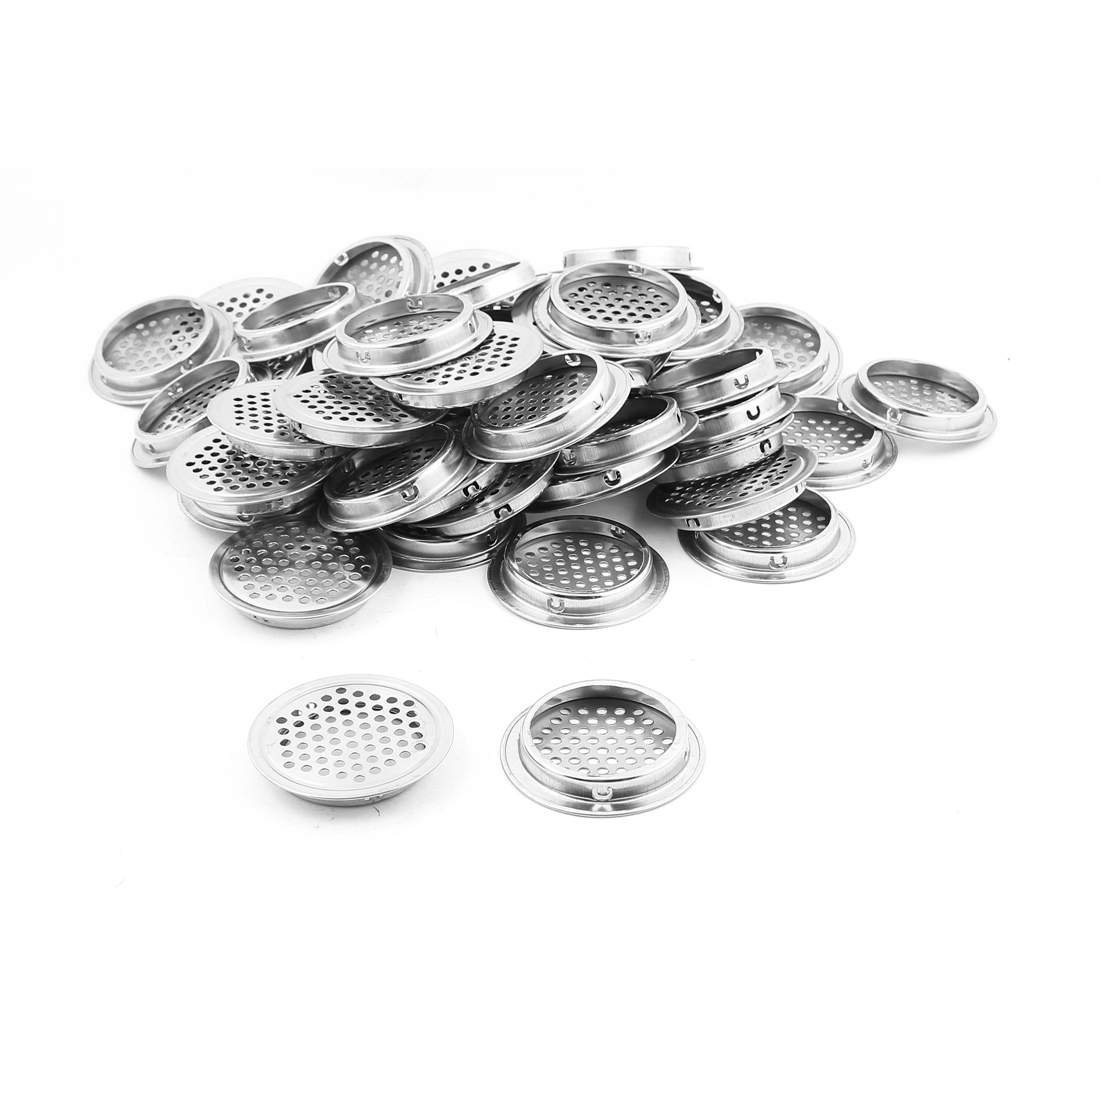 Furniture 53mm Bottom Dia Air Vent Grill Ventilation Round Cover 50PCS